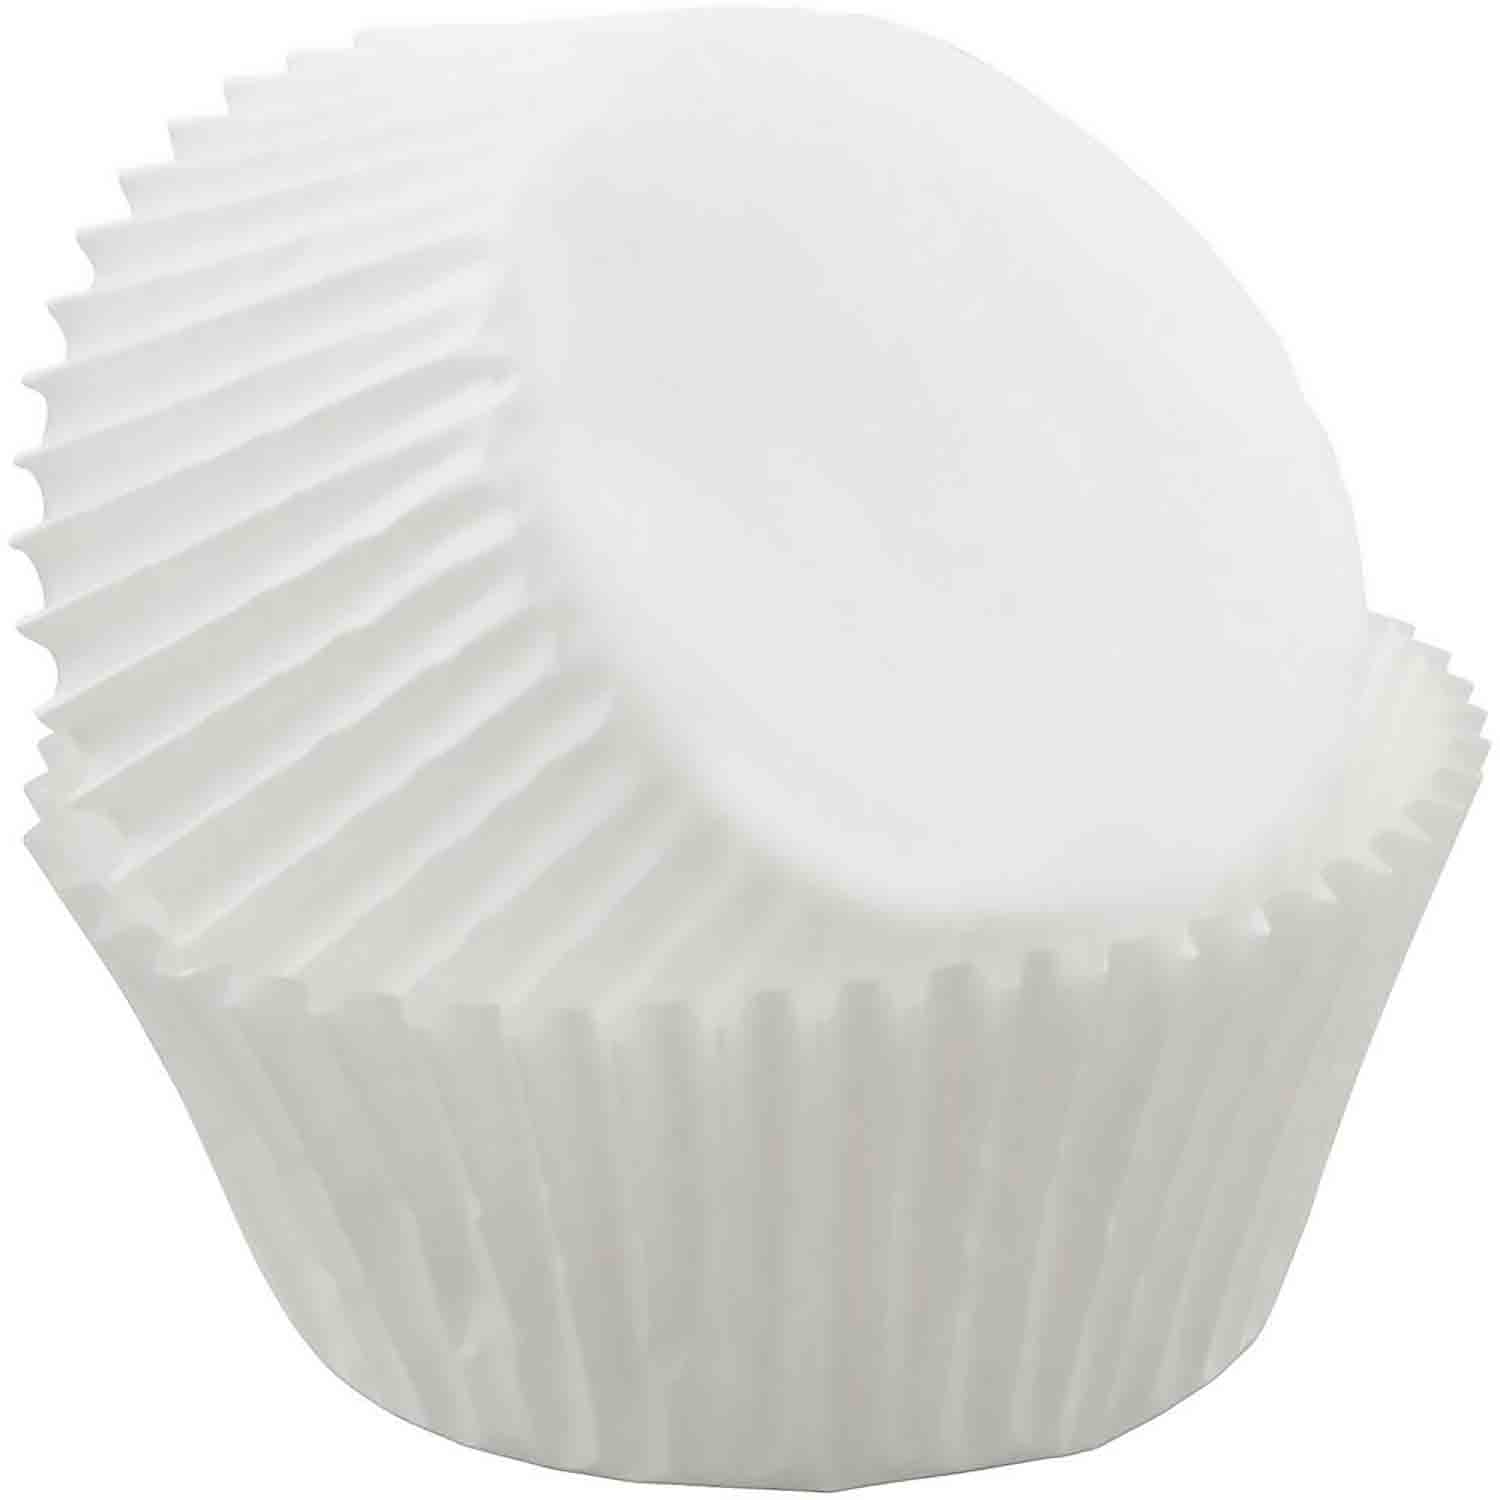 White Standard Baking Cups